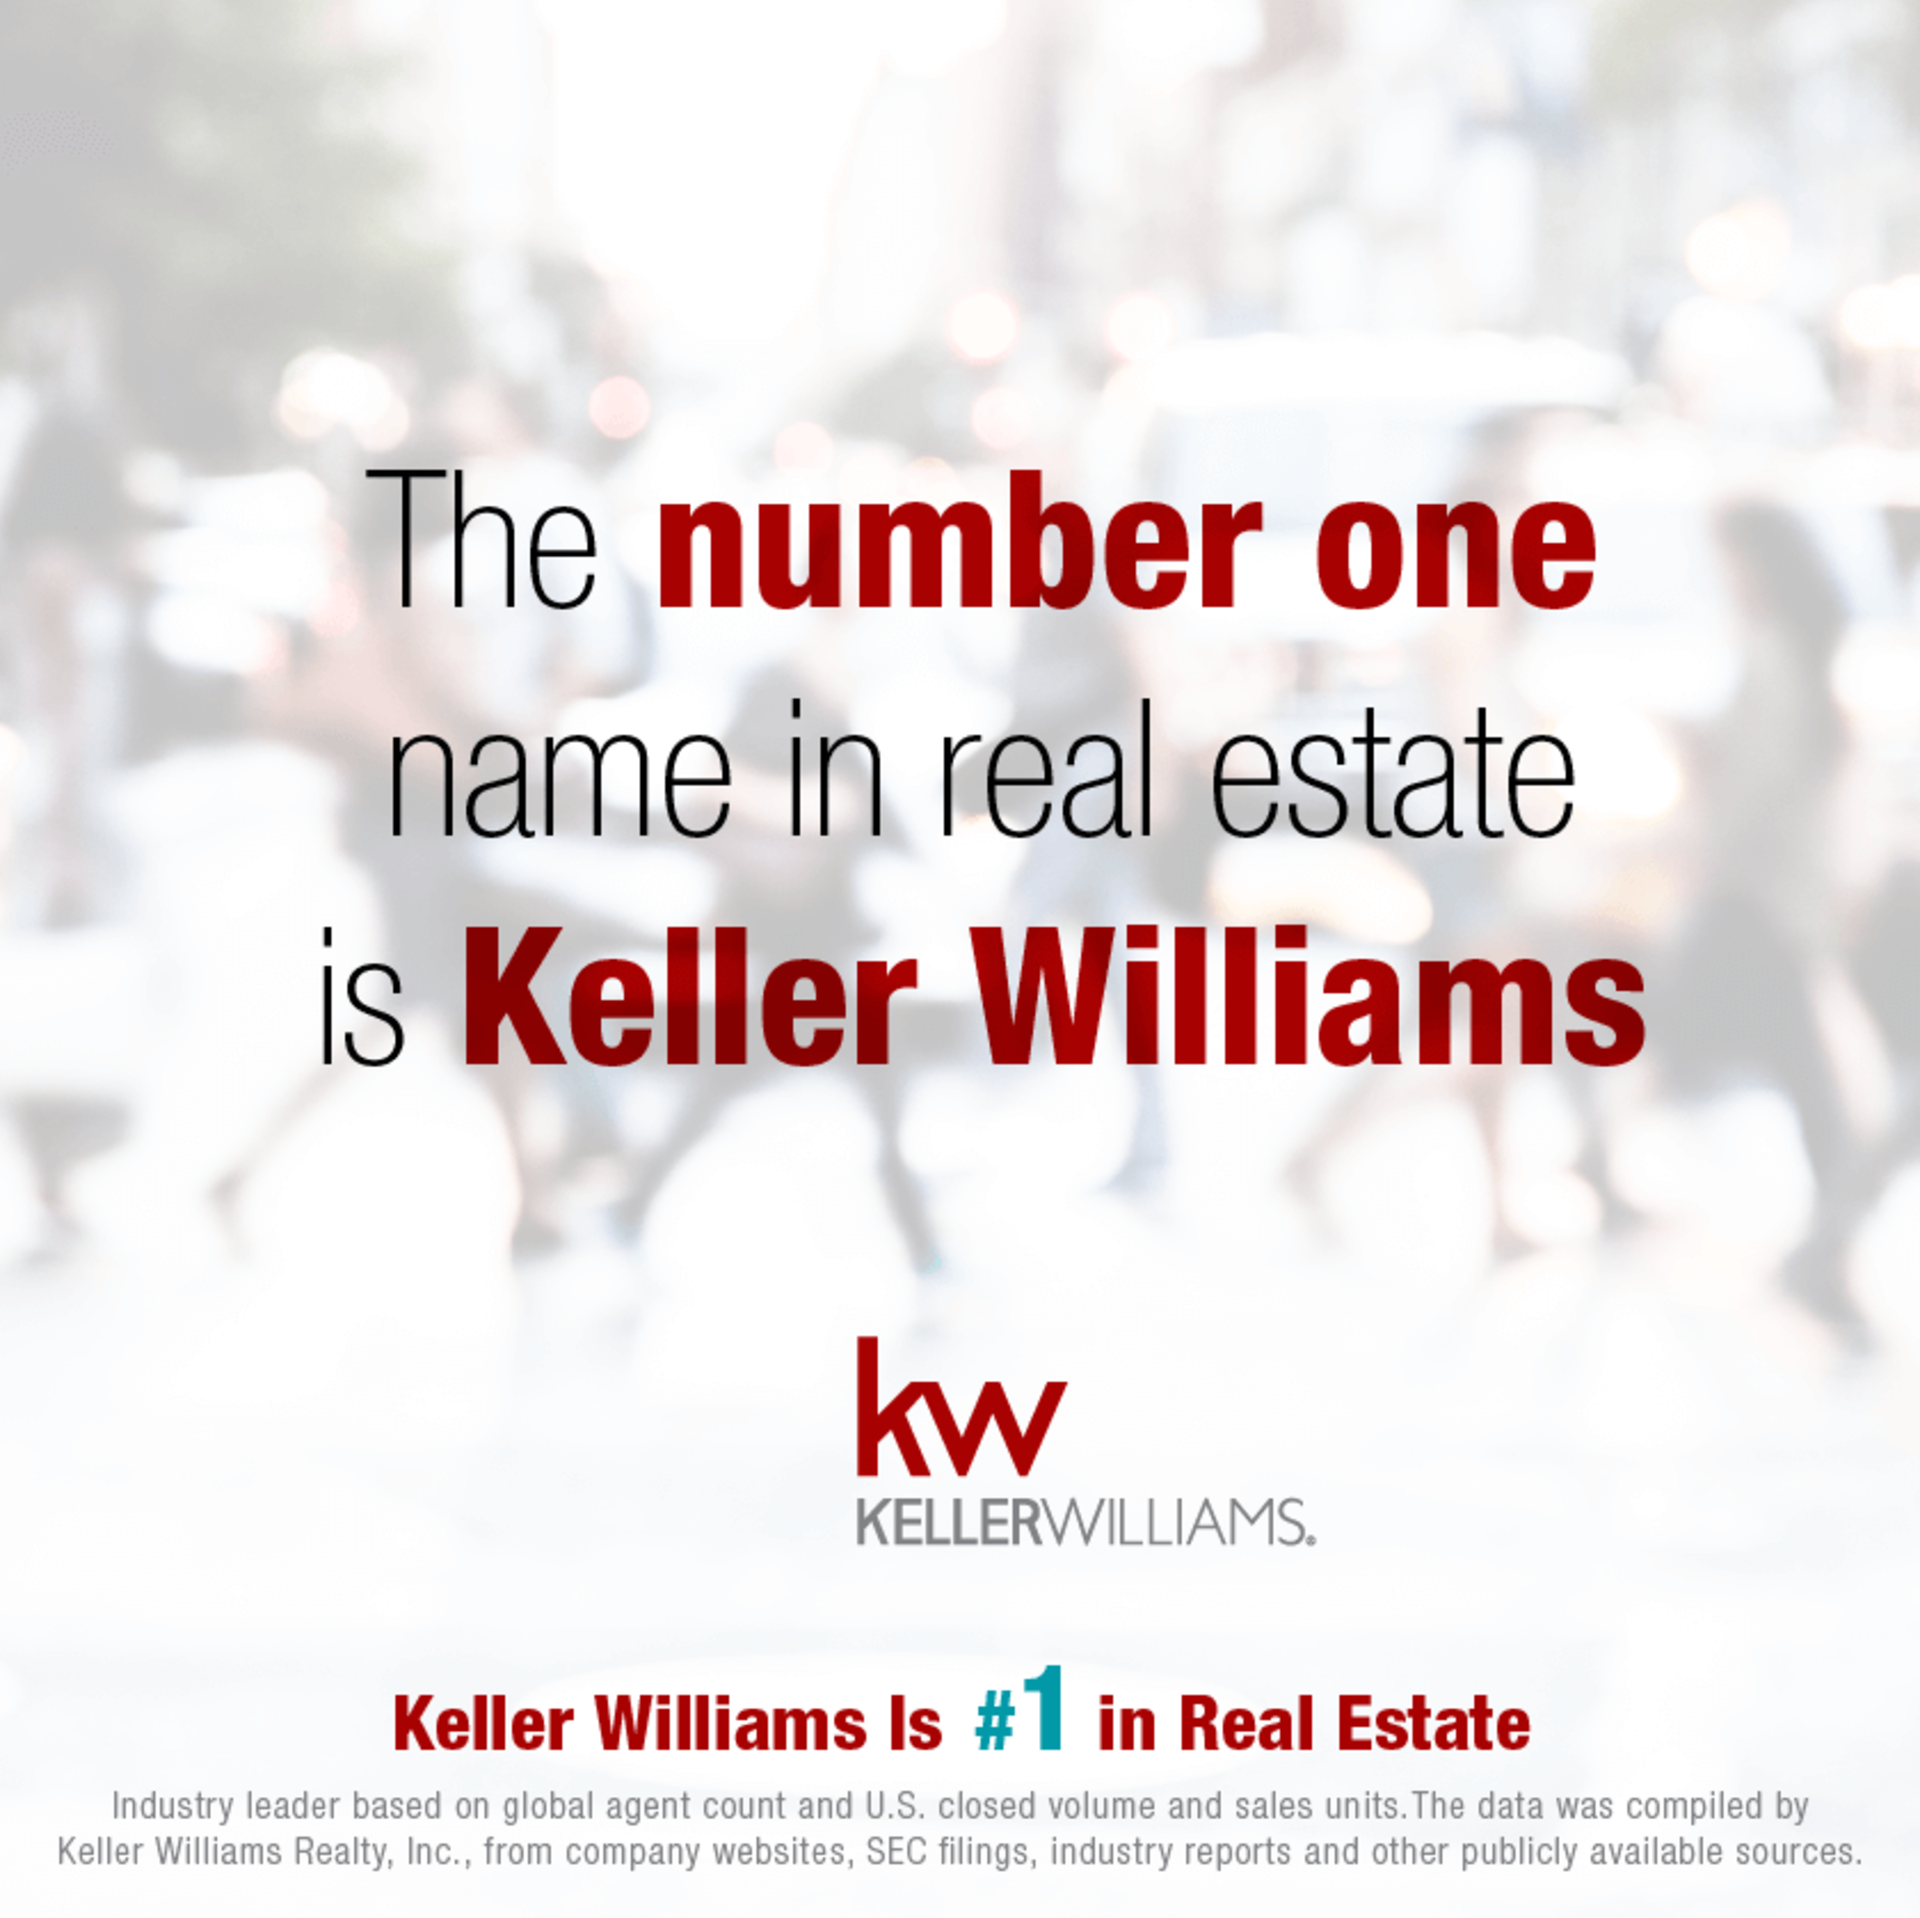 Keller Williams #1 in Real Estate!